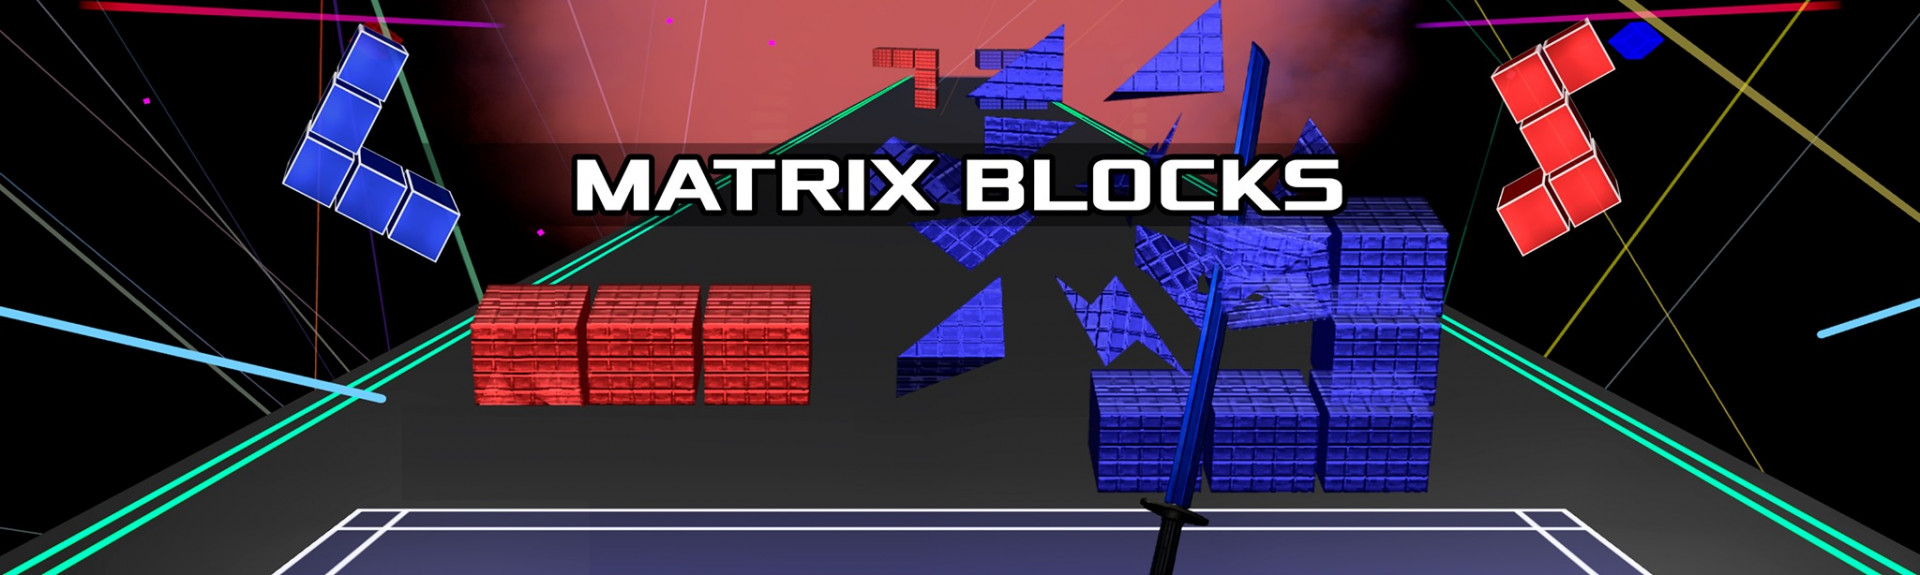 Matrix Blocks